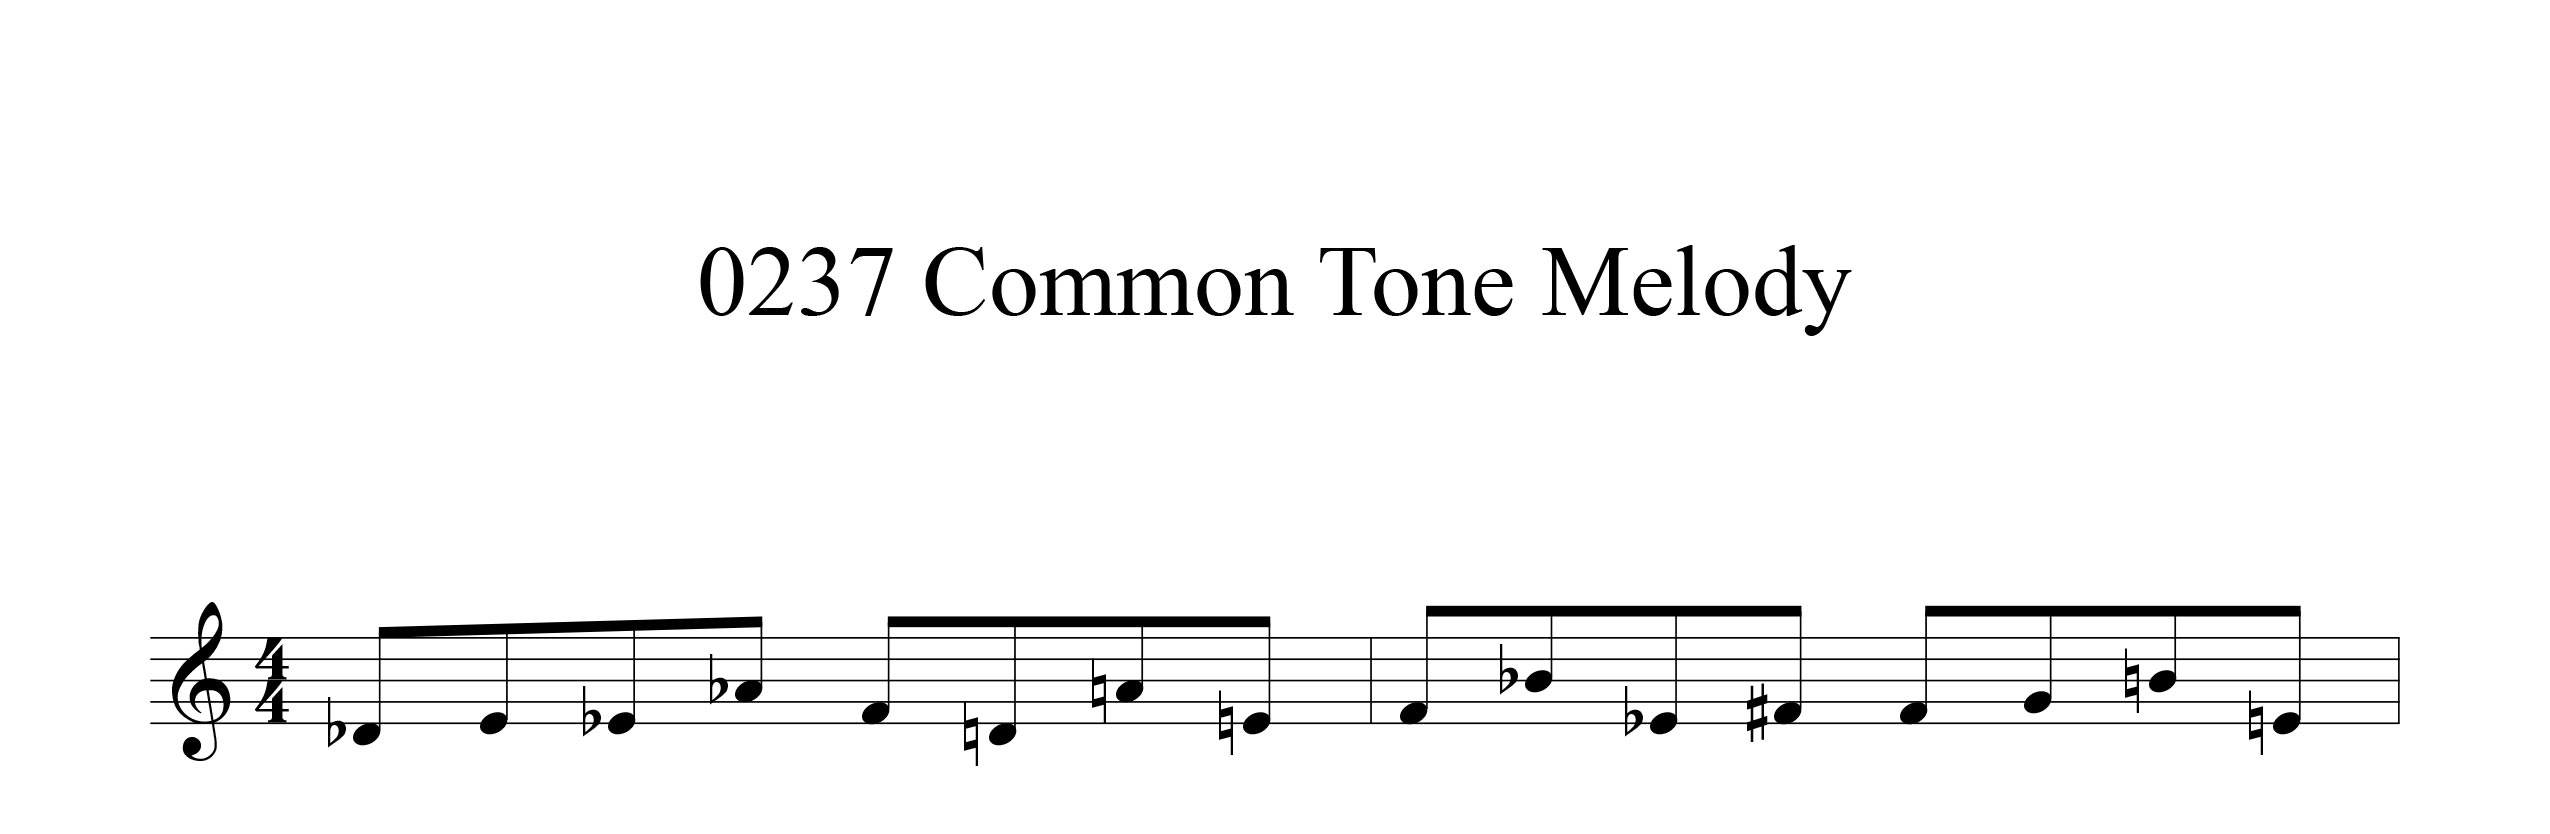 Melodic-Modulation-4-note-groups-Example-two-common-tone-improvisation-by-bruce-arnold-for-muse-eek-publishing-inc.